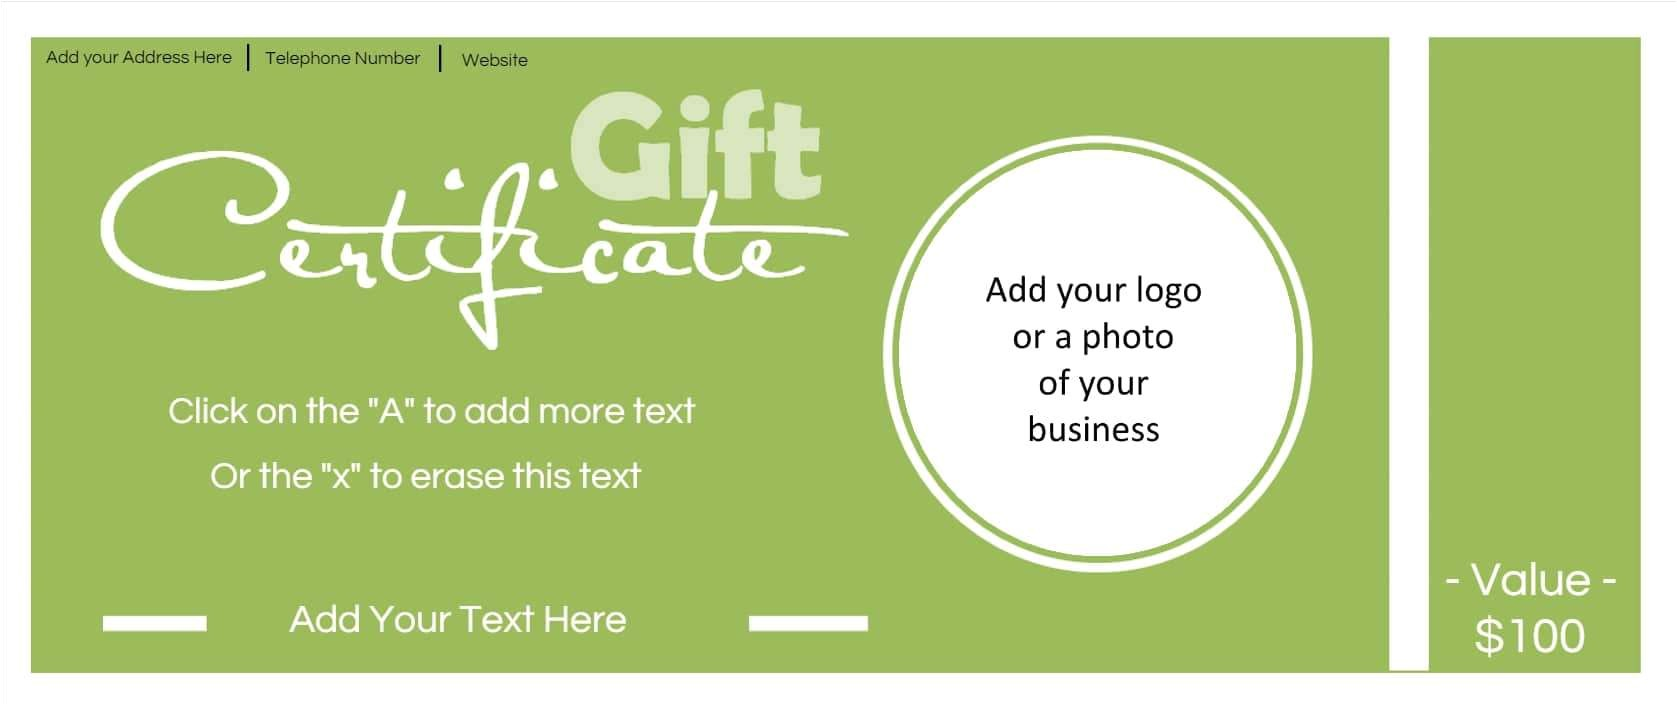 Free Business Gift Certificate Template with Logo Gift Certificate Template with Logo